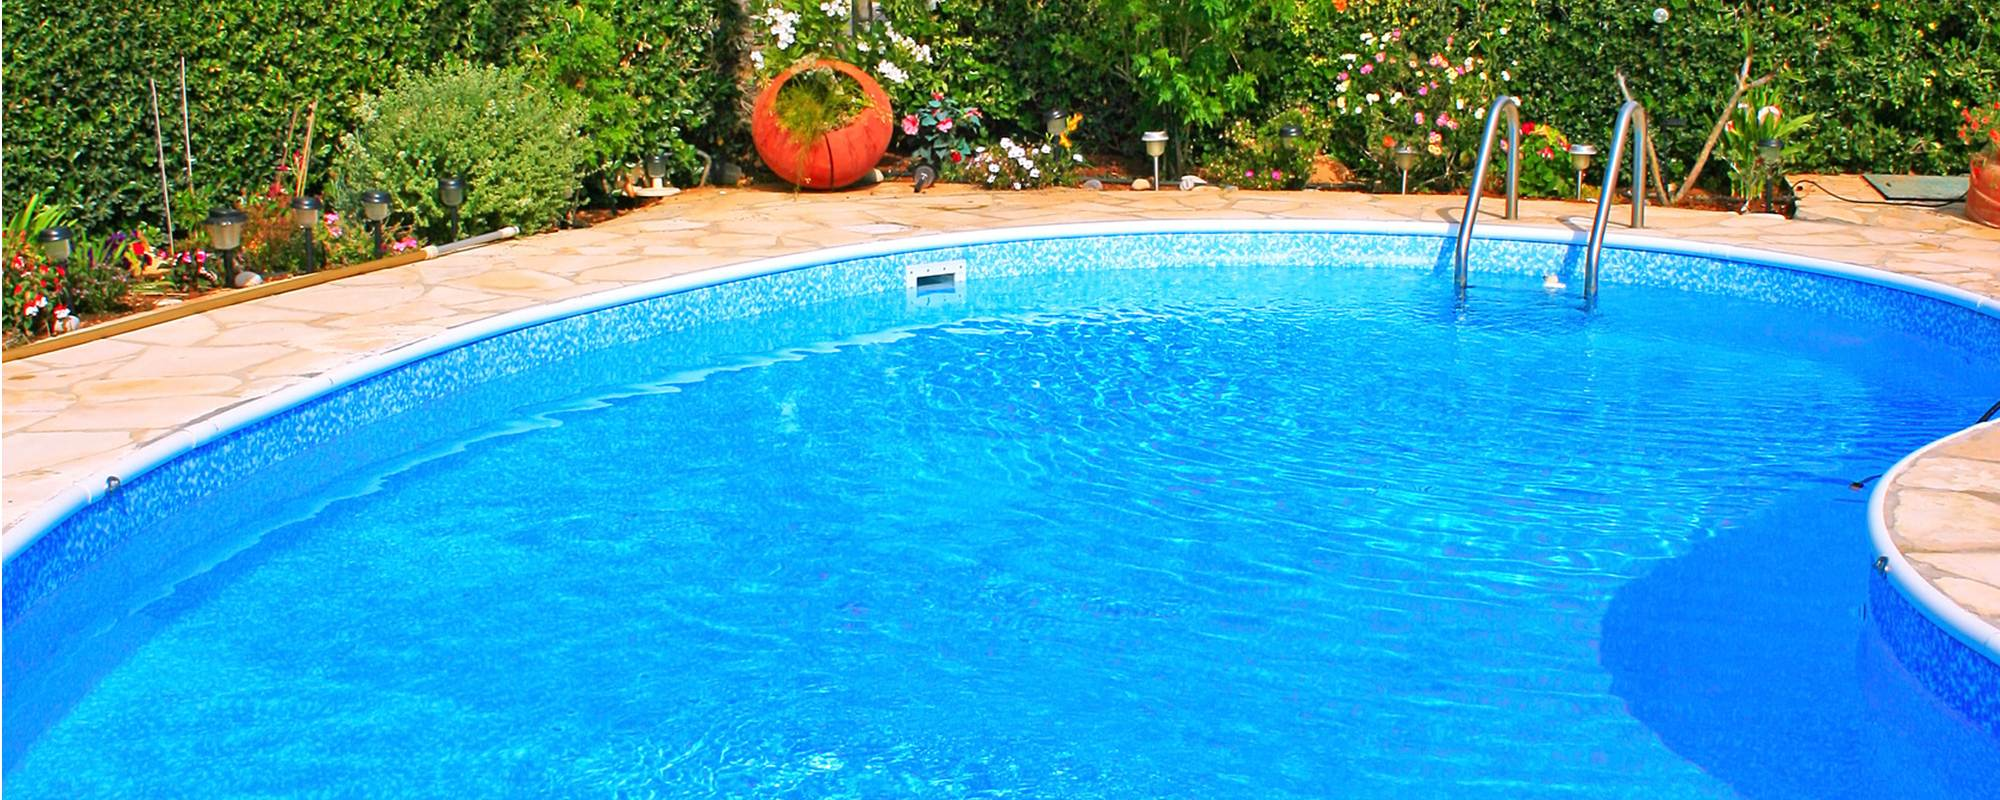 Piscine interrate Economiche